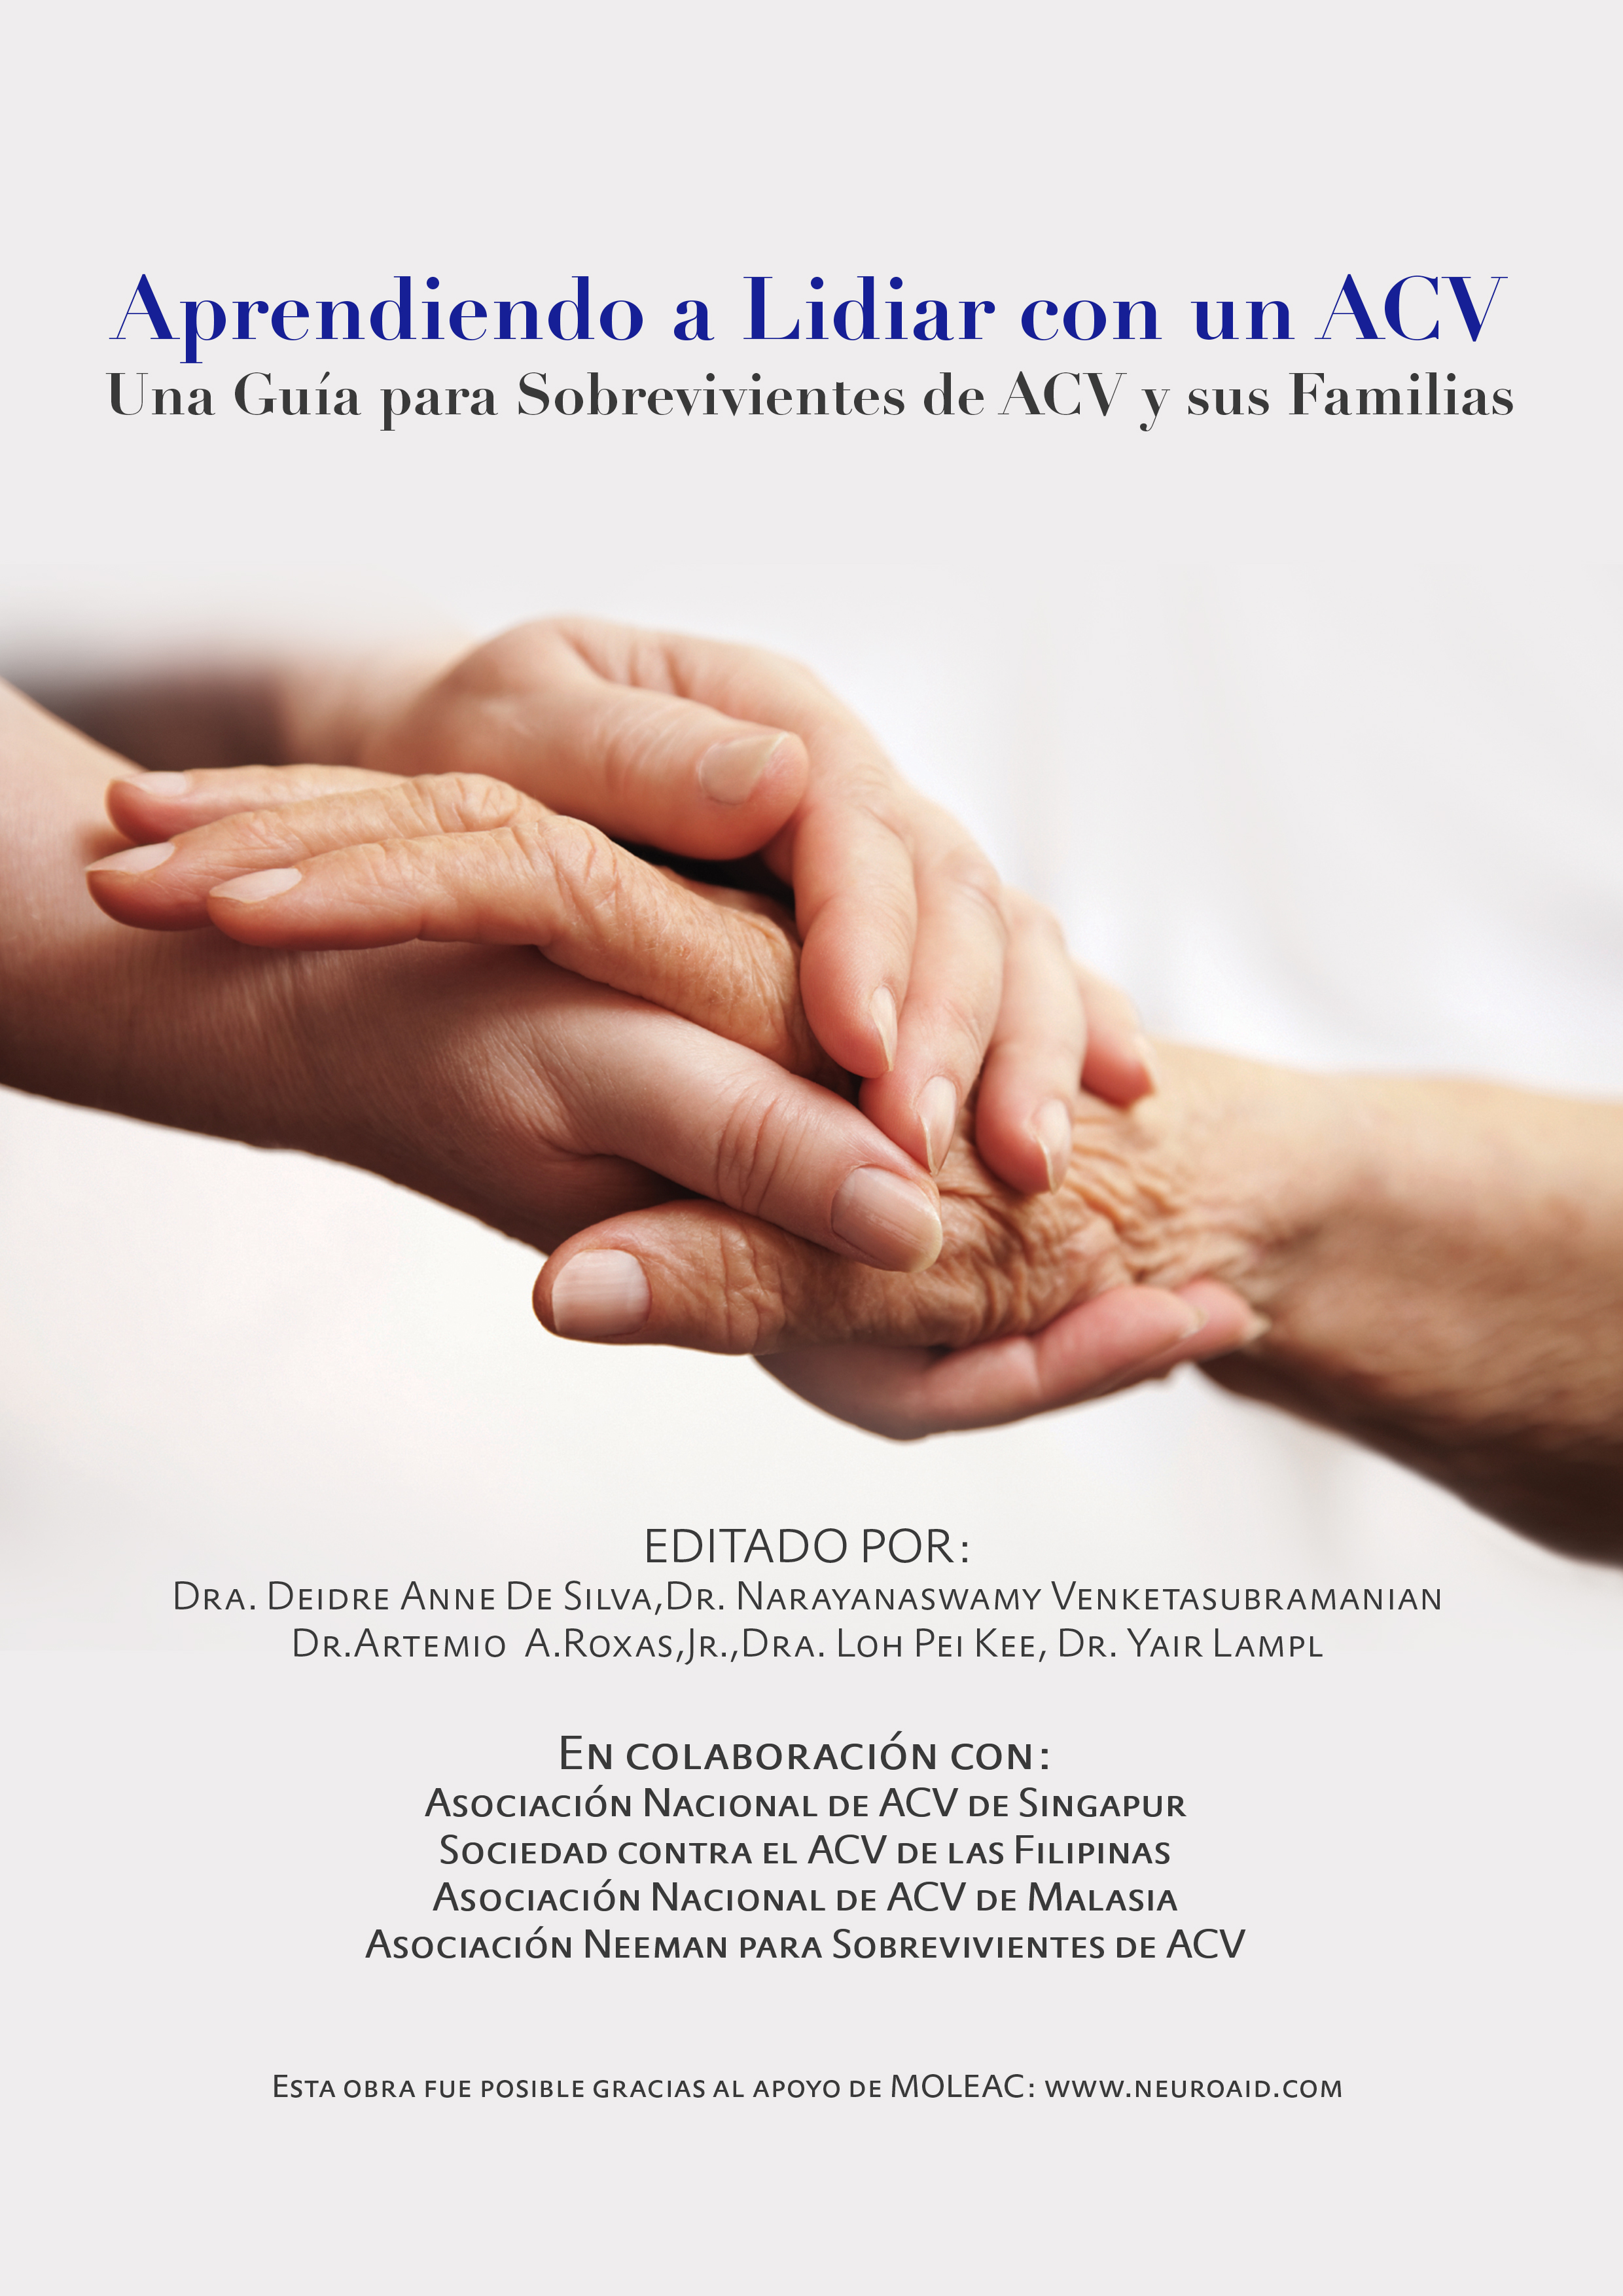 Descargar Libros Electronicos Gratis Ebook Descargar Ebook Gratis Stroke Treatment Information